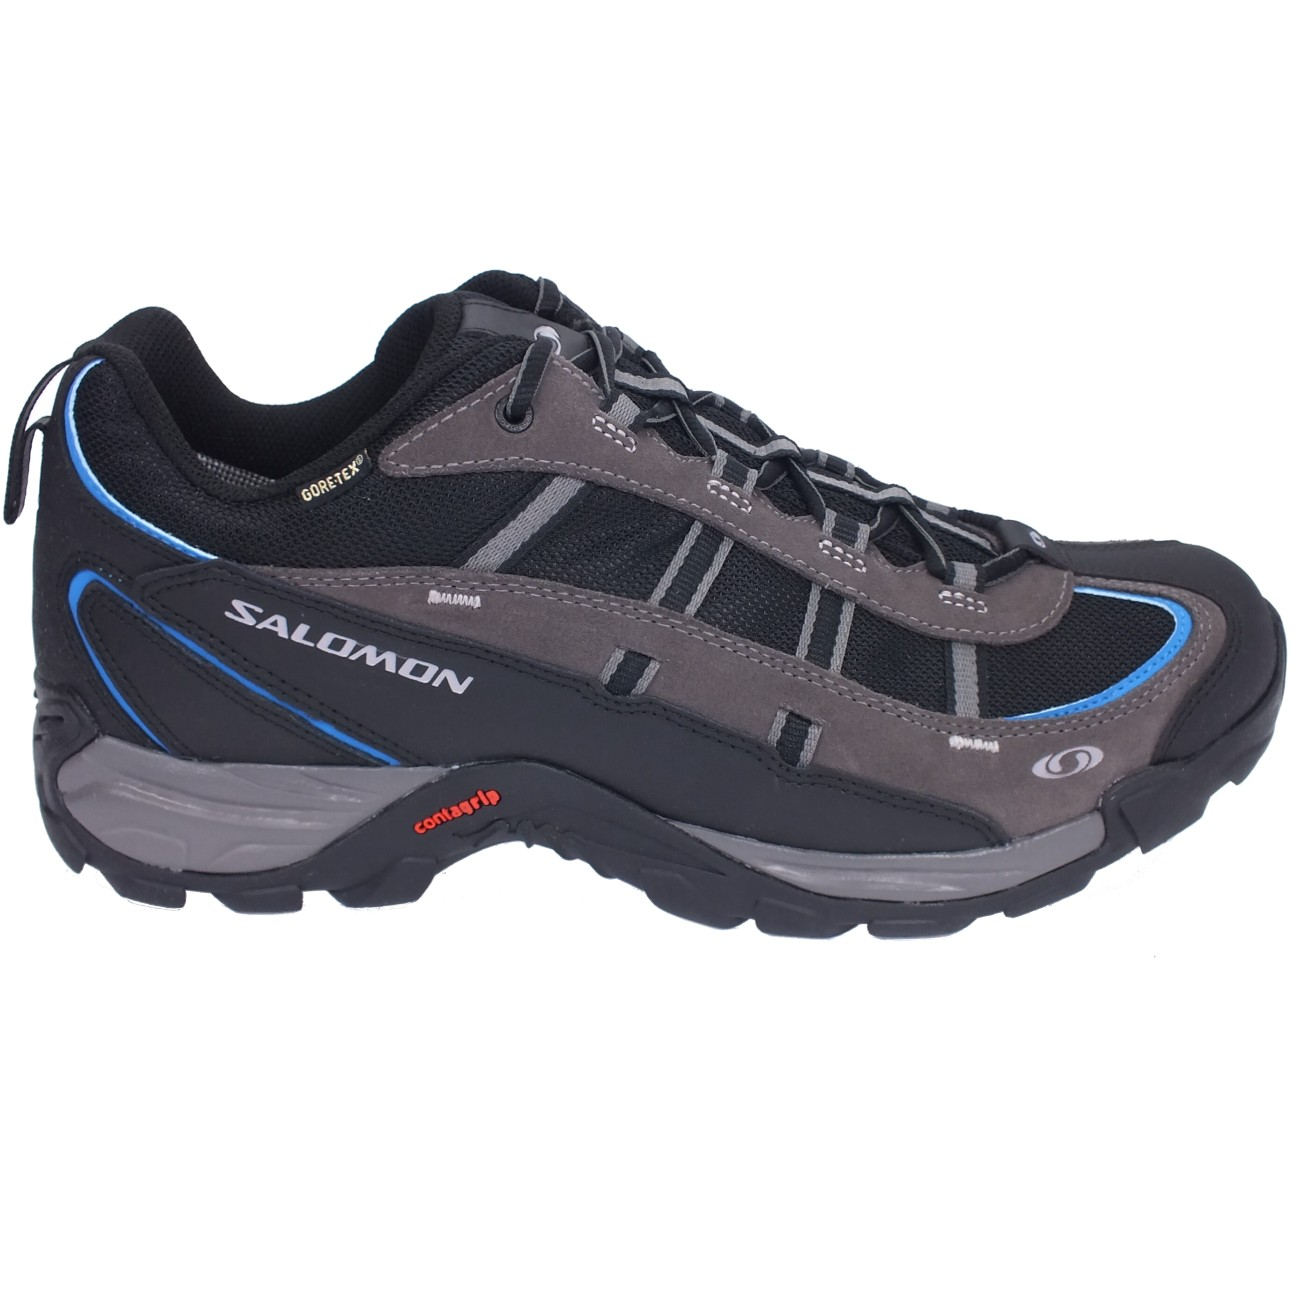 salomon booster gtx gore tex schuhe wanderschuhe. Black Bedroom Furniture Sets. Home Design Ideas